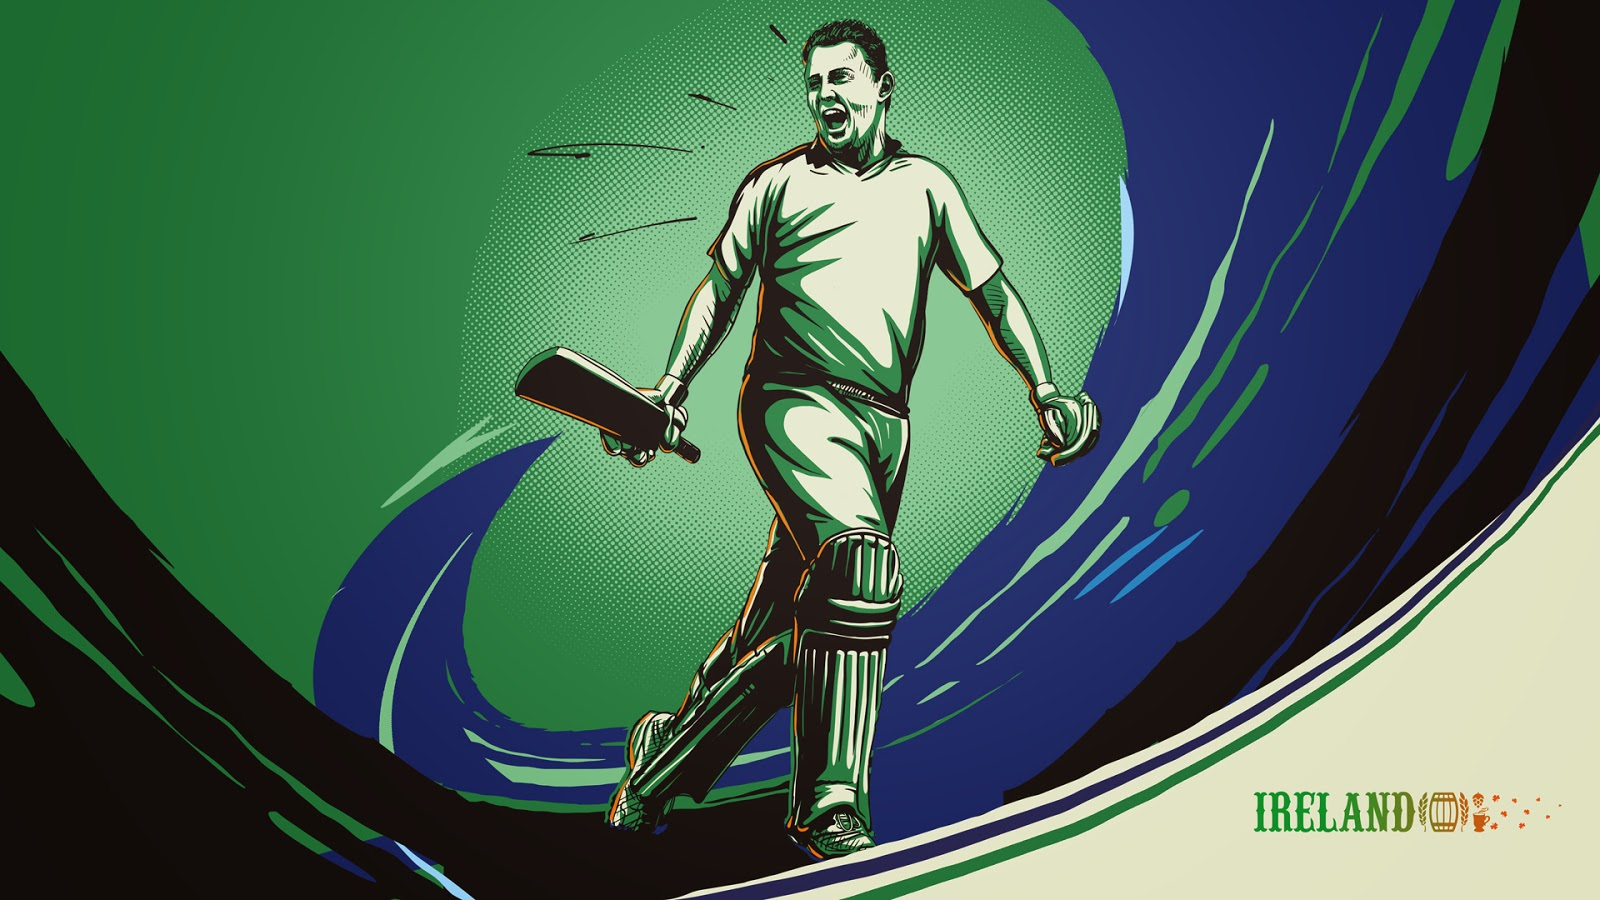 William Porterfield Ireland Cricketer illustration sketch